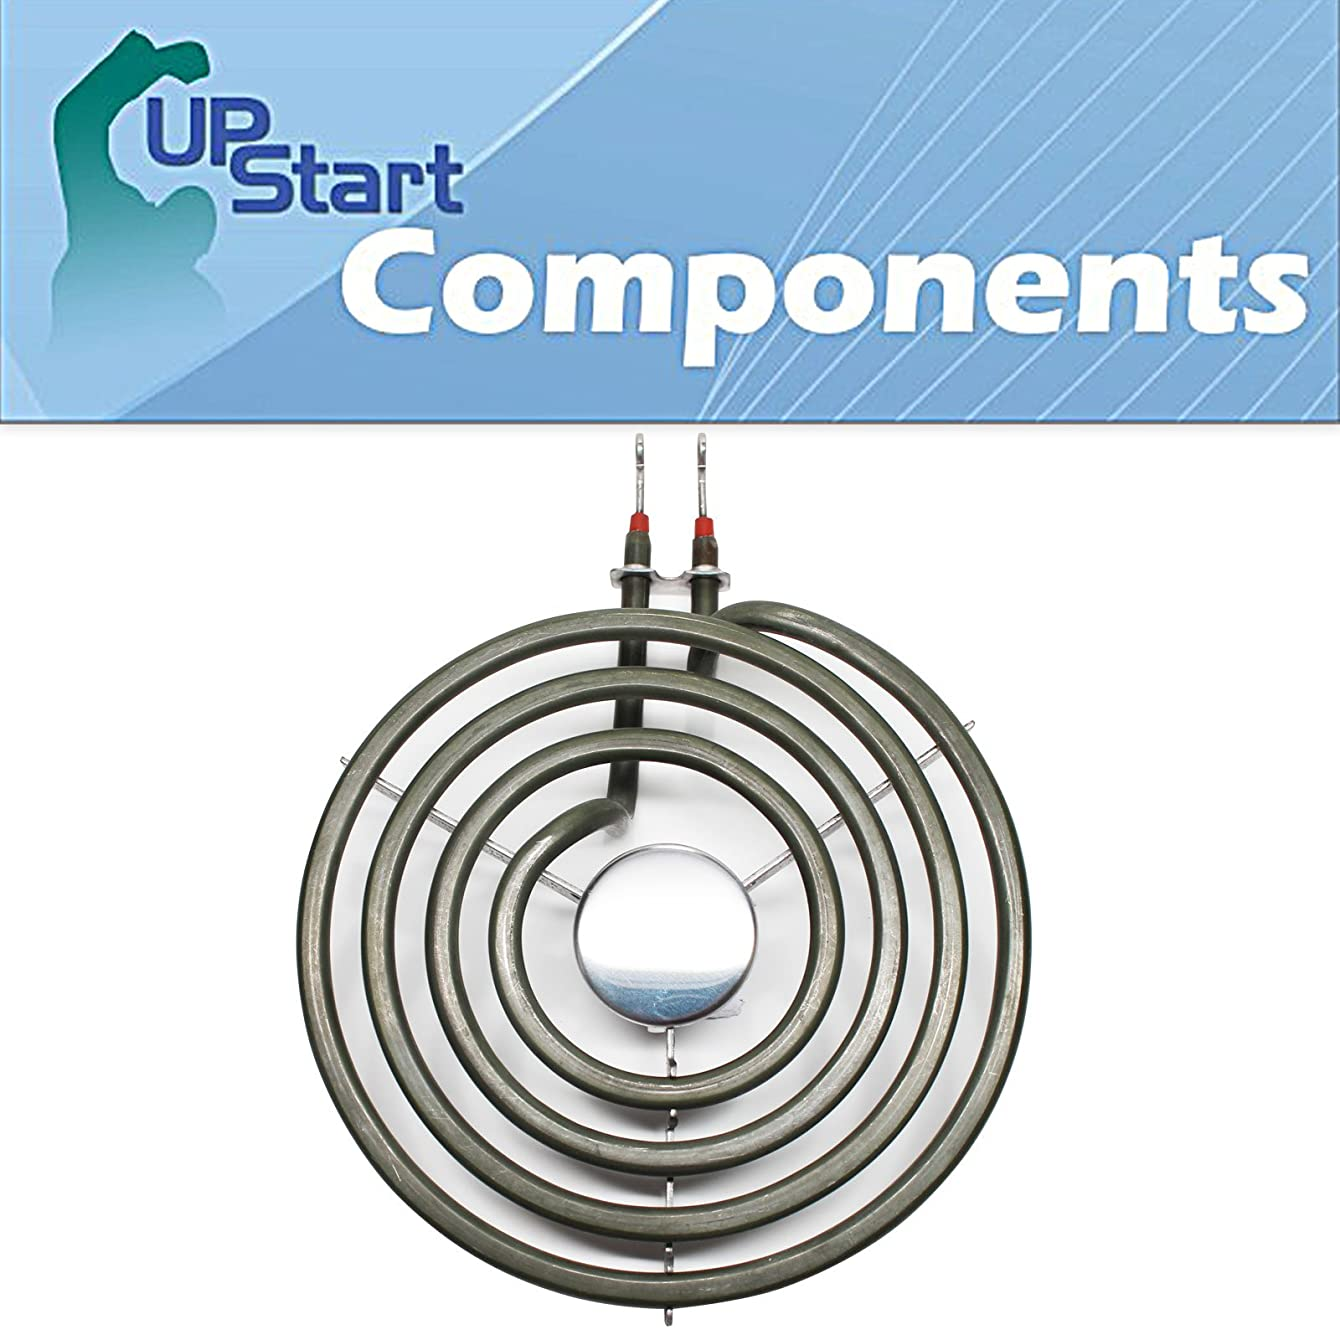 Replacement Whirlpool RF3020XVW3 6 inch 4 Turns Surface Burner Element - Compatible Whirlpool 660532 Heating Element for Range, Stove & Cooktop